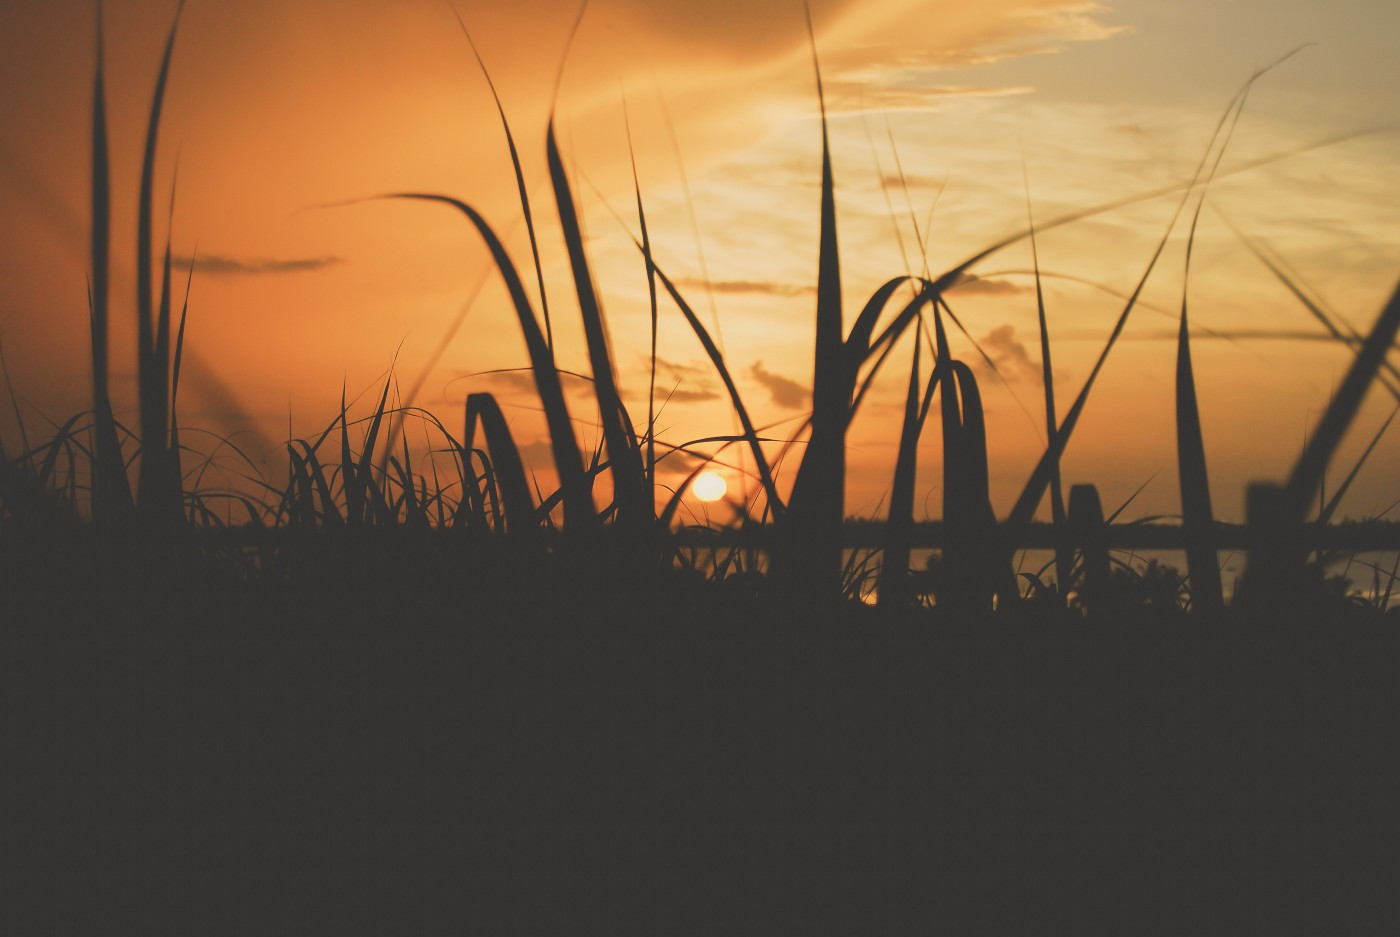 Images is that of the setting sun on the far horizon and in the front are the outline of stalks of grass that can be sugar cane.